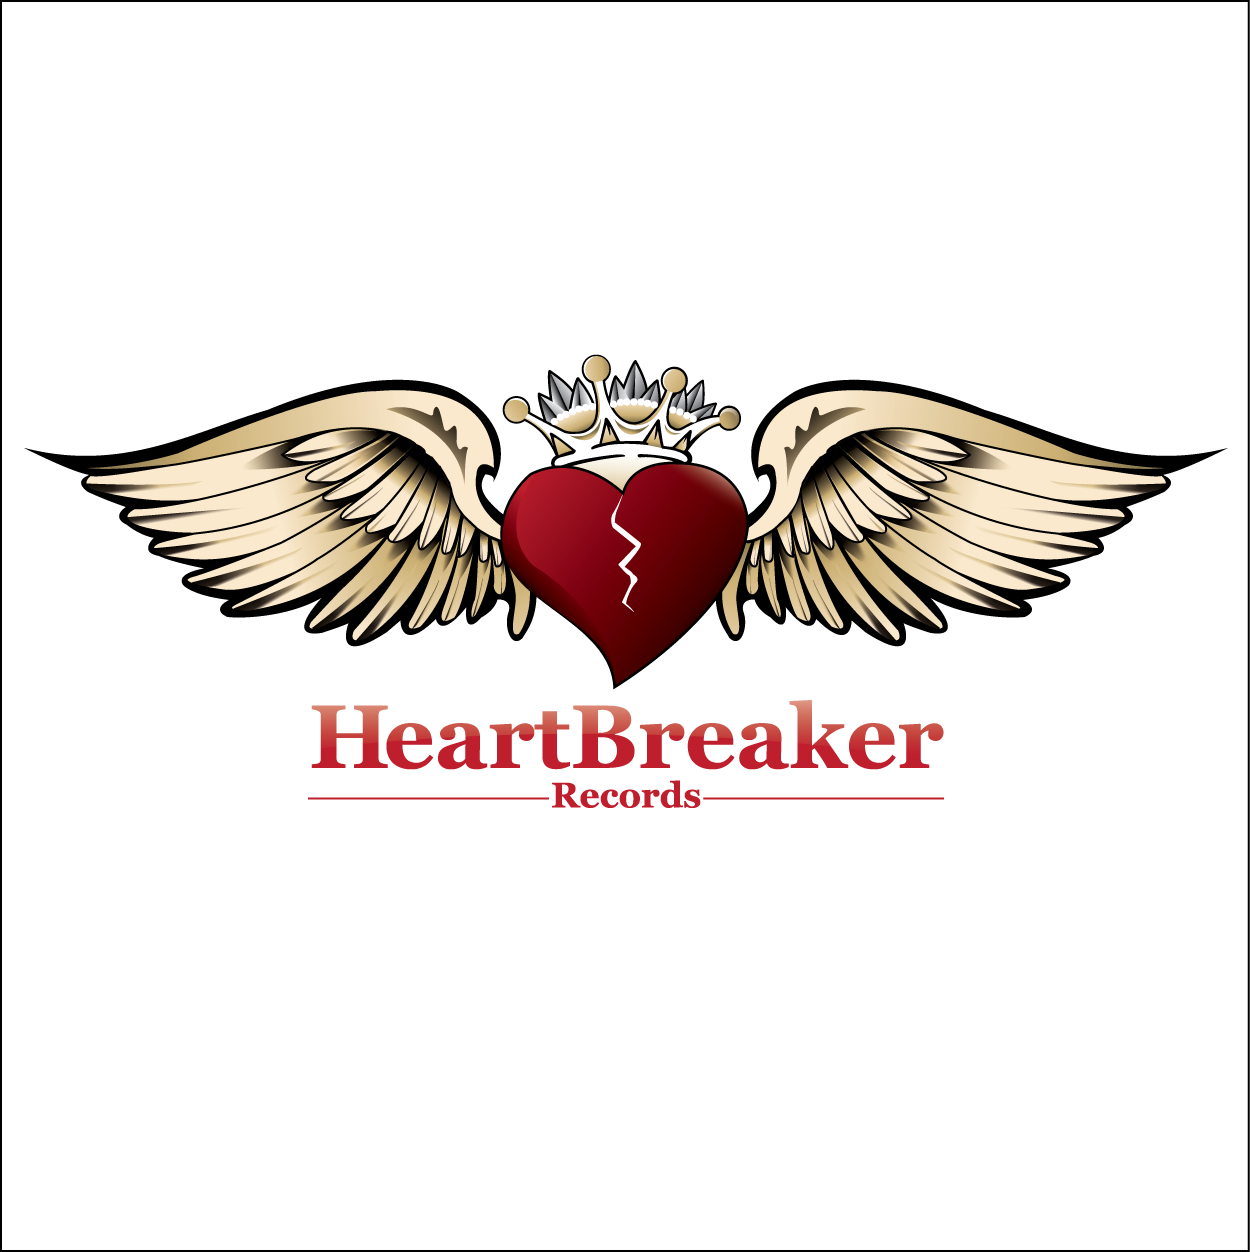 Logo Design by trabas - Entry No. 62 in the Logo Design Contest Heartbreaker Records.